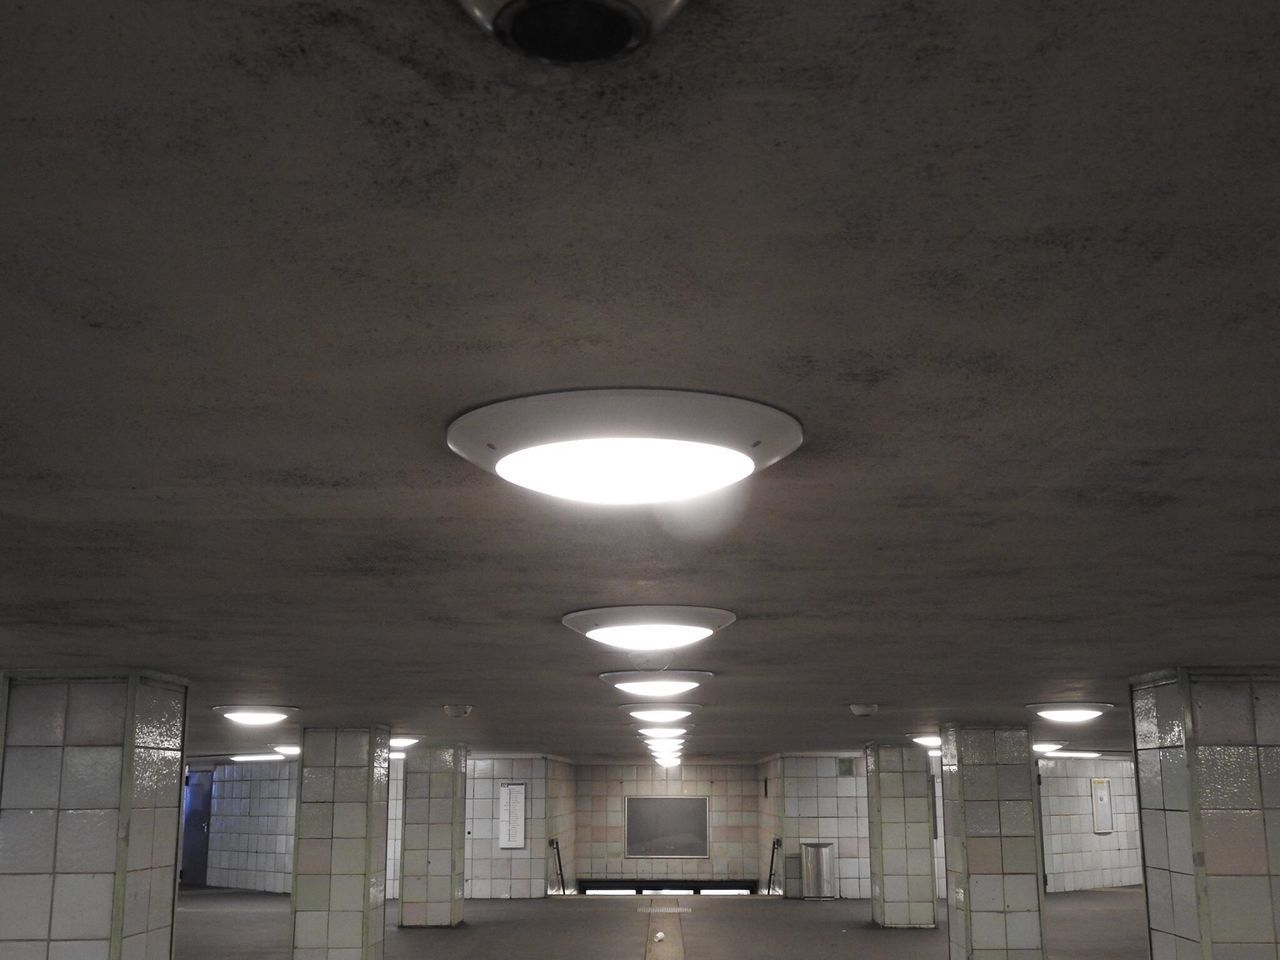 Lighting Equipment Illuminated Ceiling Electricity  Indoors  Low Angle View No People Pendant Light Architecture Day Berlin Hermannplatz